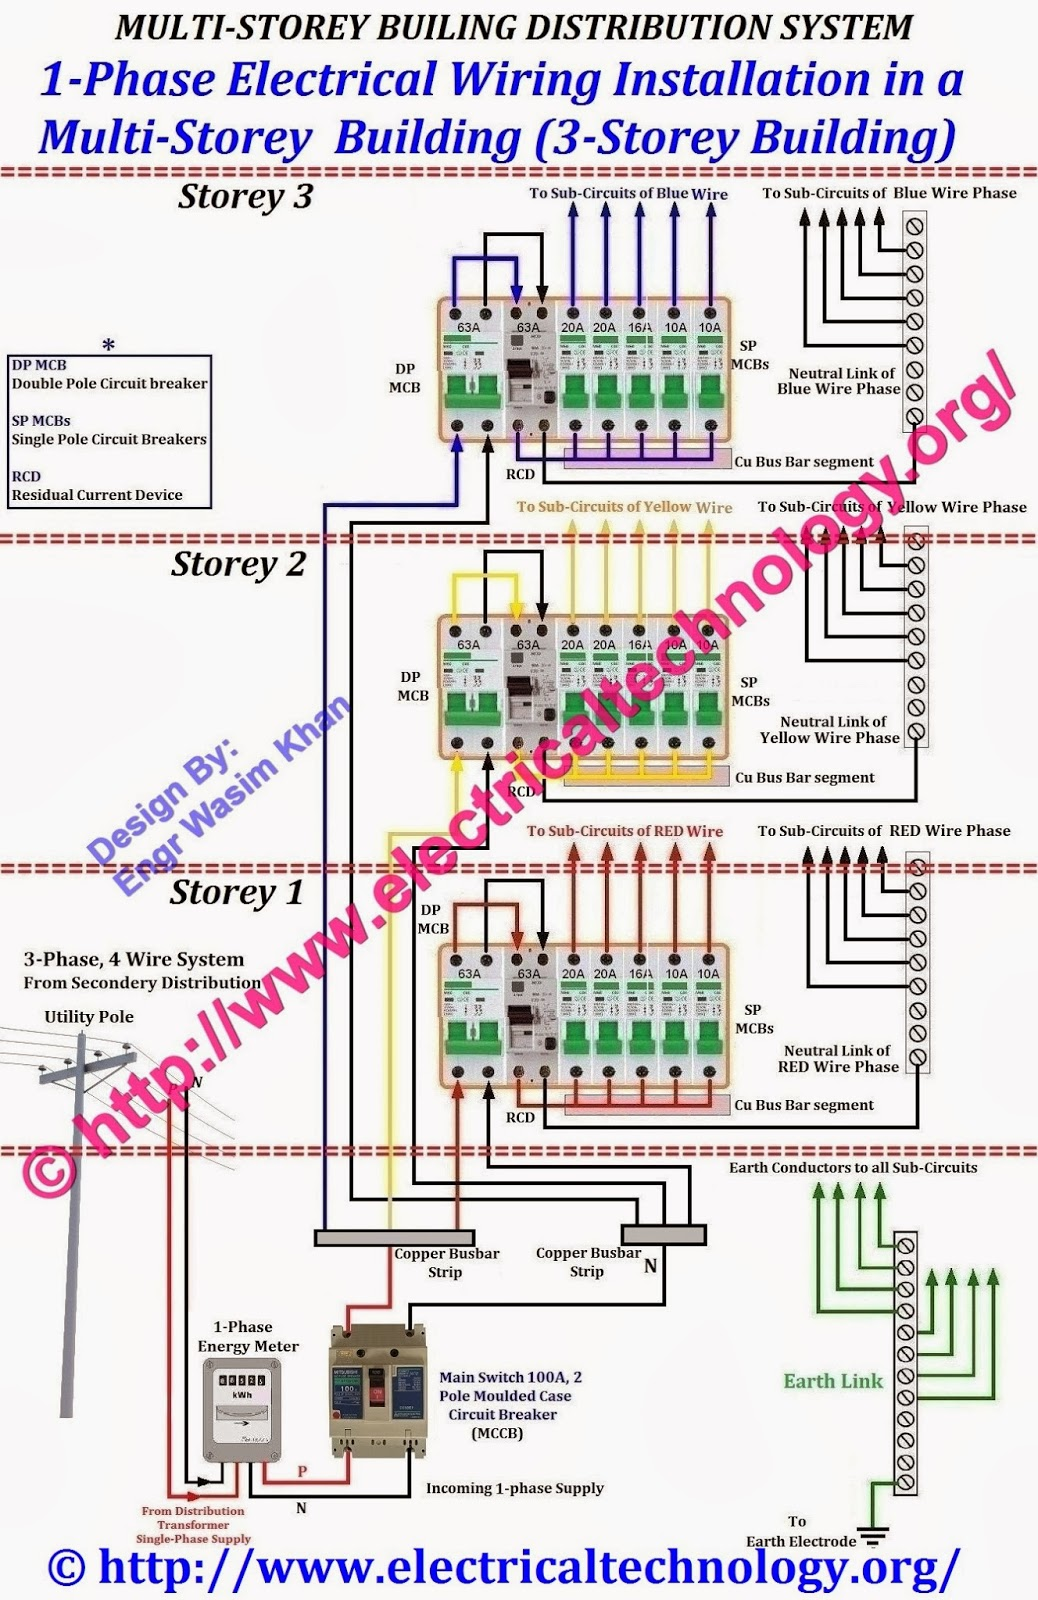 Building Electrical Installation Wiring Diagram System Sequence Visio Single Phase In A Multi